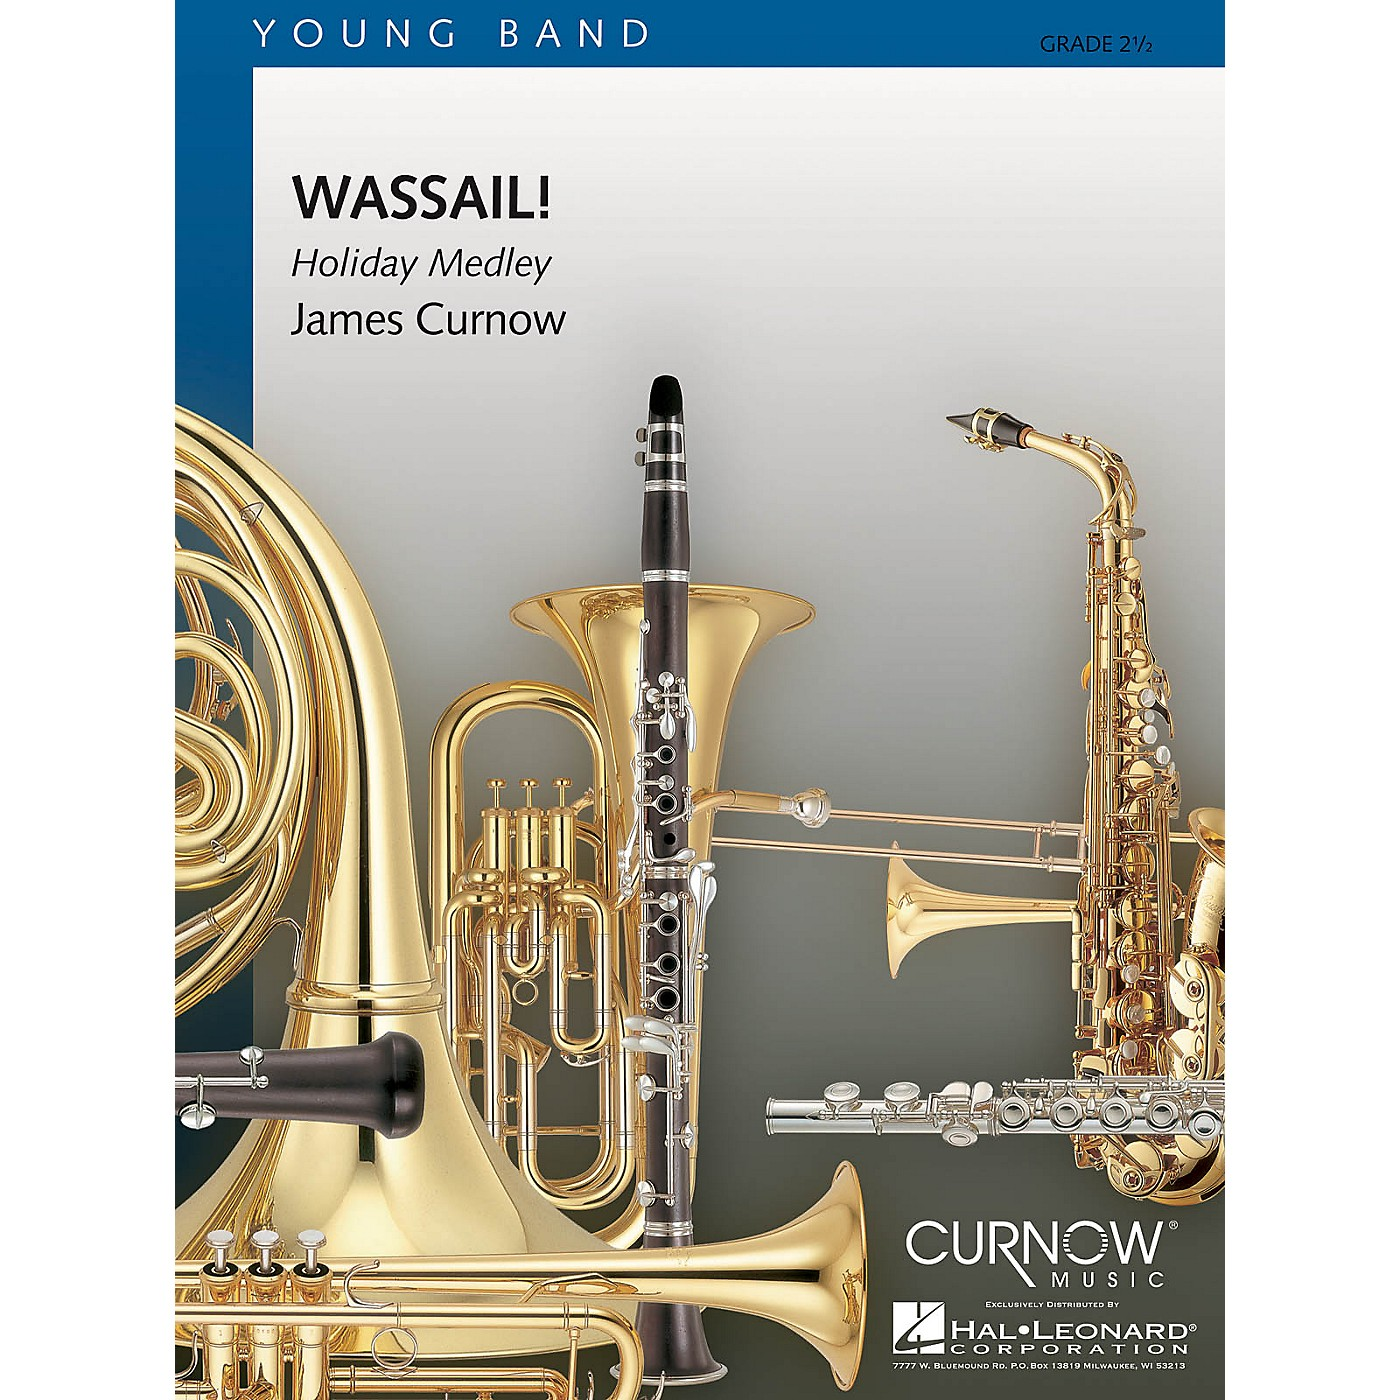 Curnow Music Wassail! (Grade 2 - Score Only) Concert Band Level 2 Arranged by James Curnow thumbnail